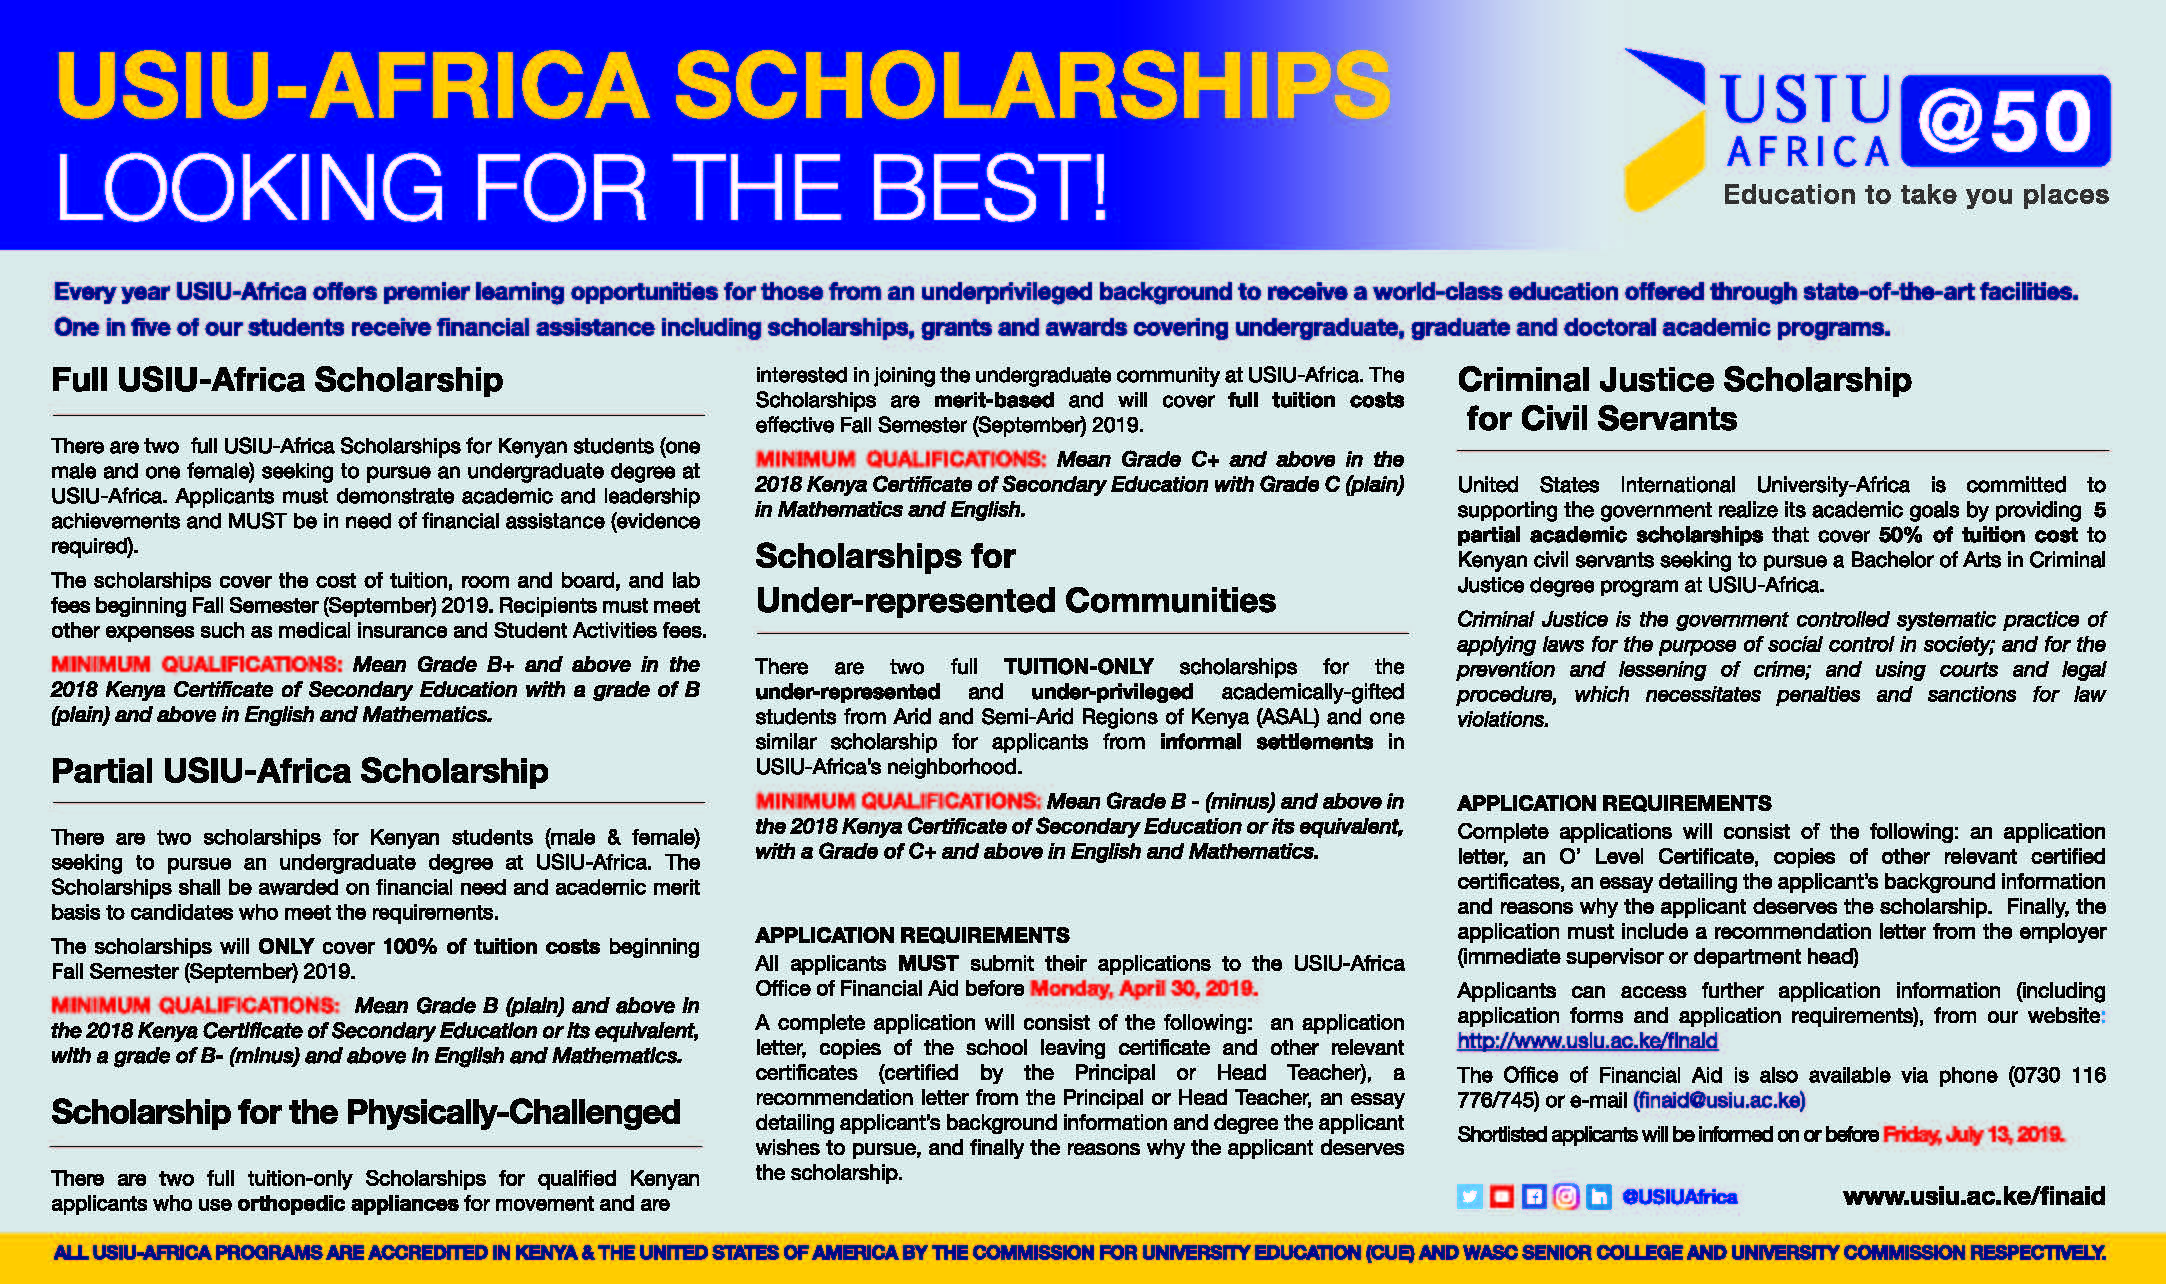 USIU-AFRICA SCHOLARSHIPS; DEADLINE - Monday, April 30, 2019.